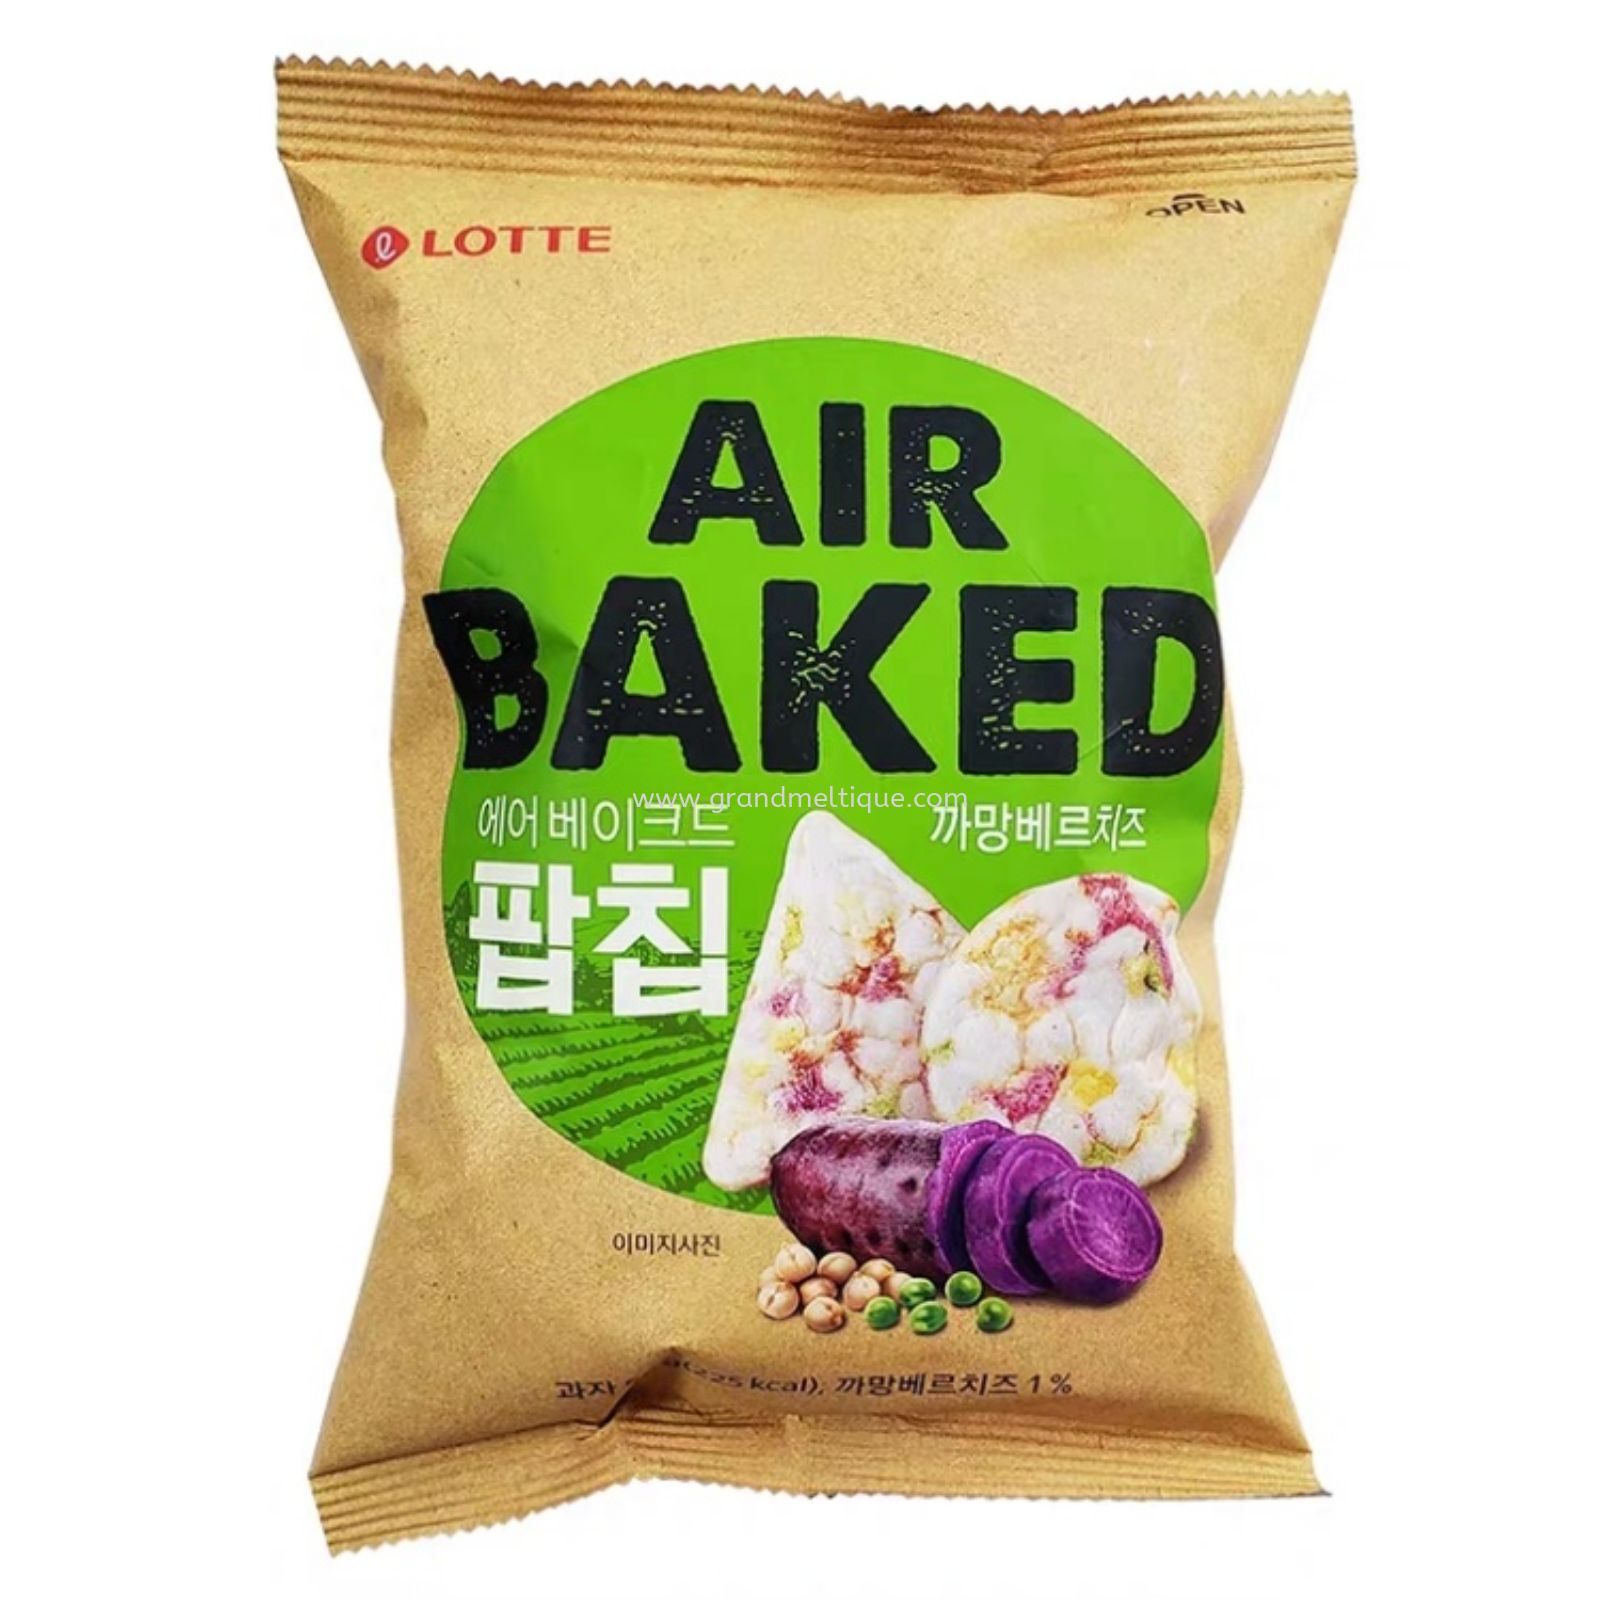 LOTTE AIR BAKED POP CHIP BAKED POTATO 乐天紫薯味非油炸米片65G